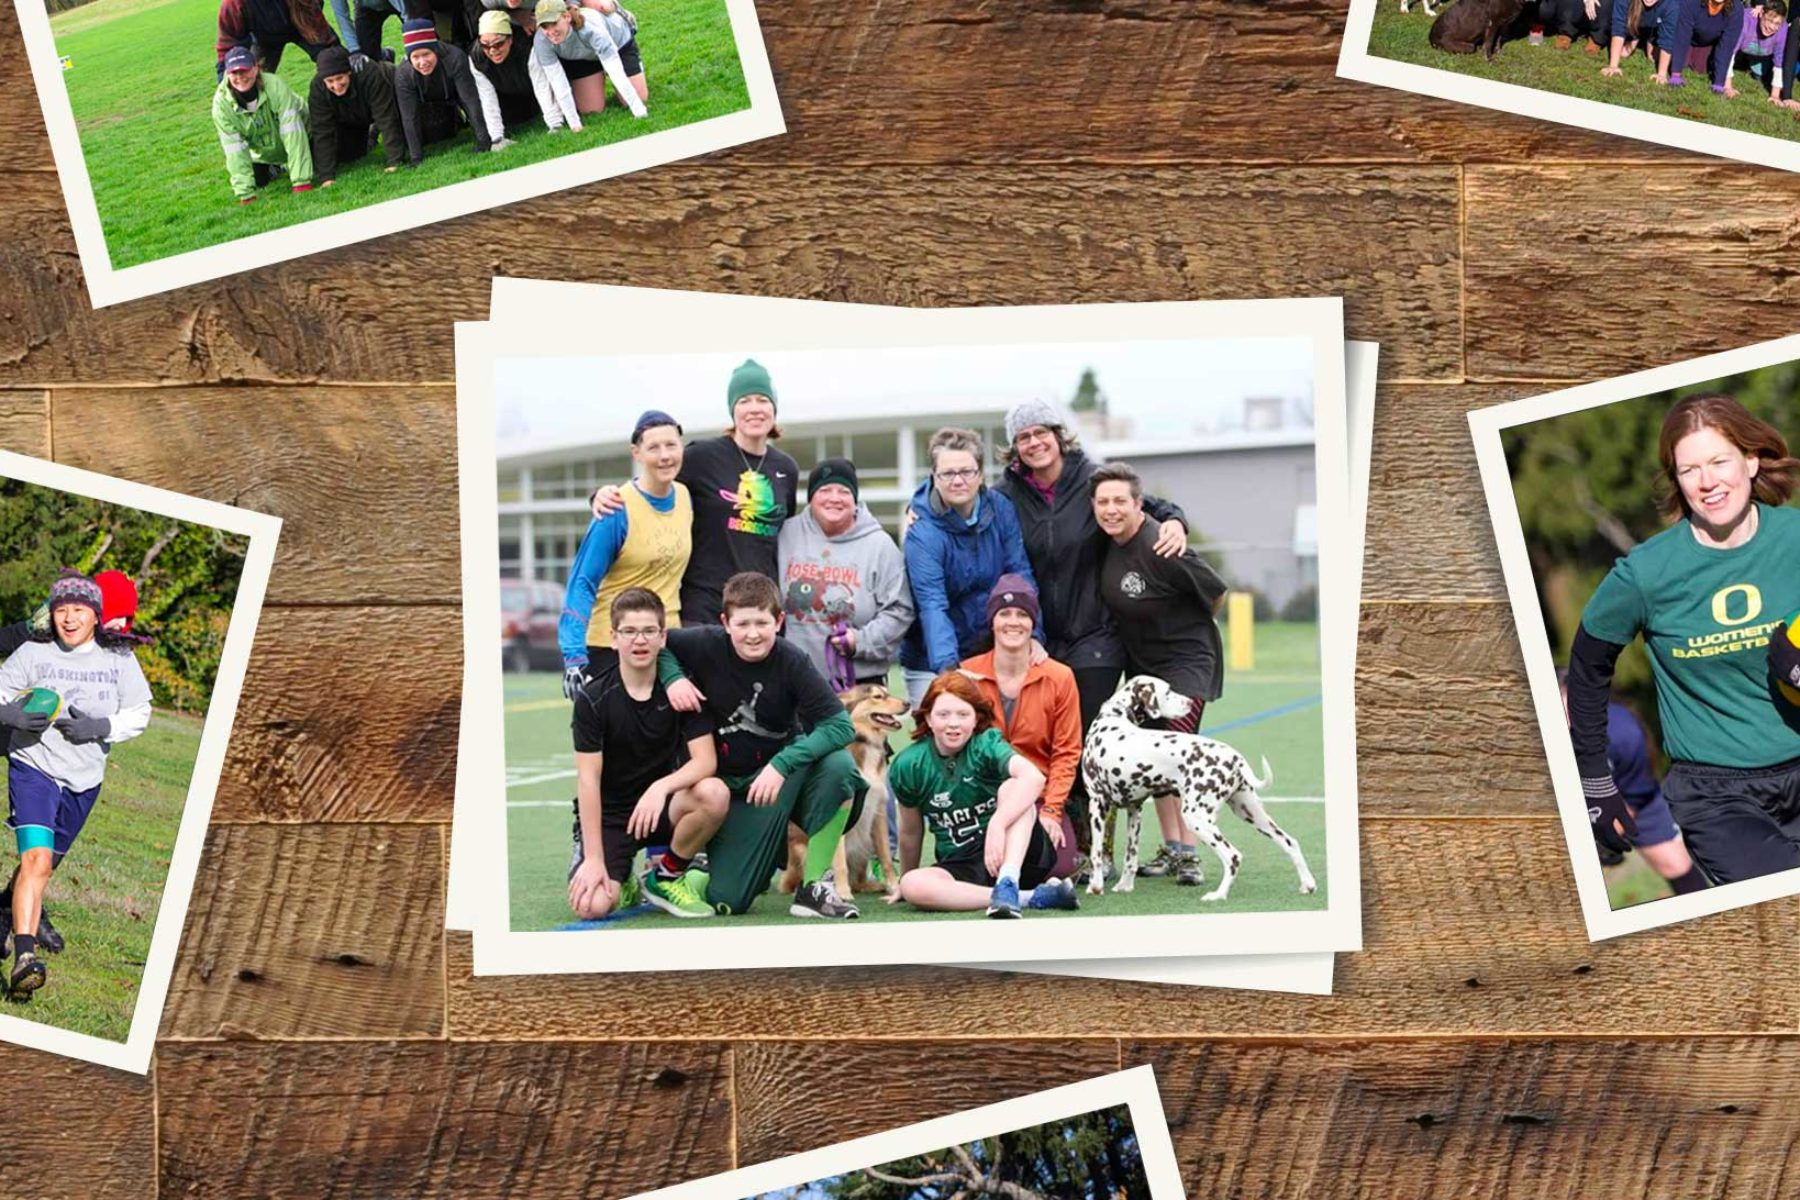 A photo composite of a group playing football.